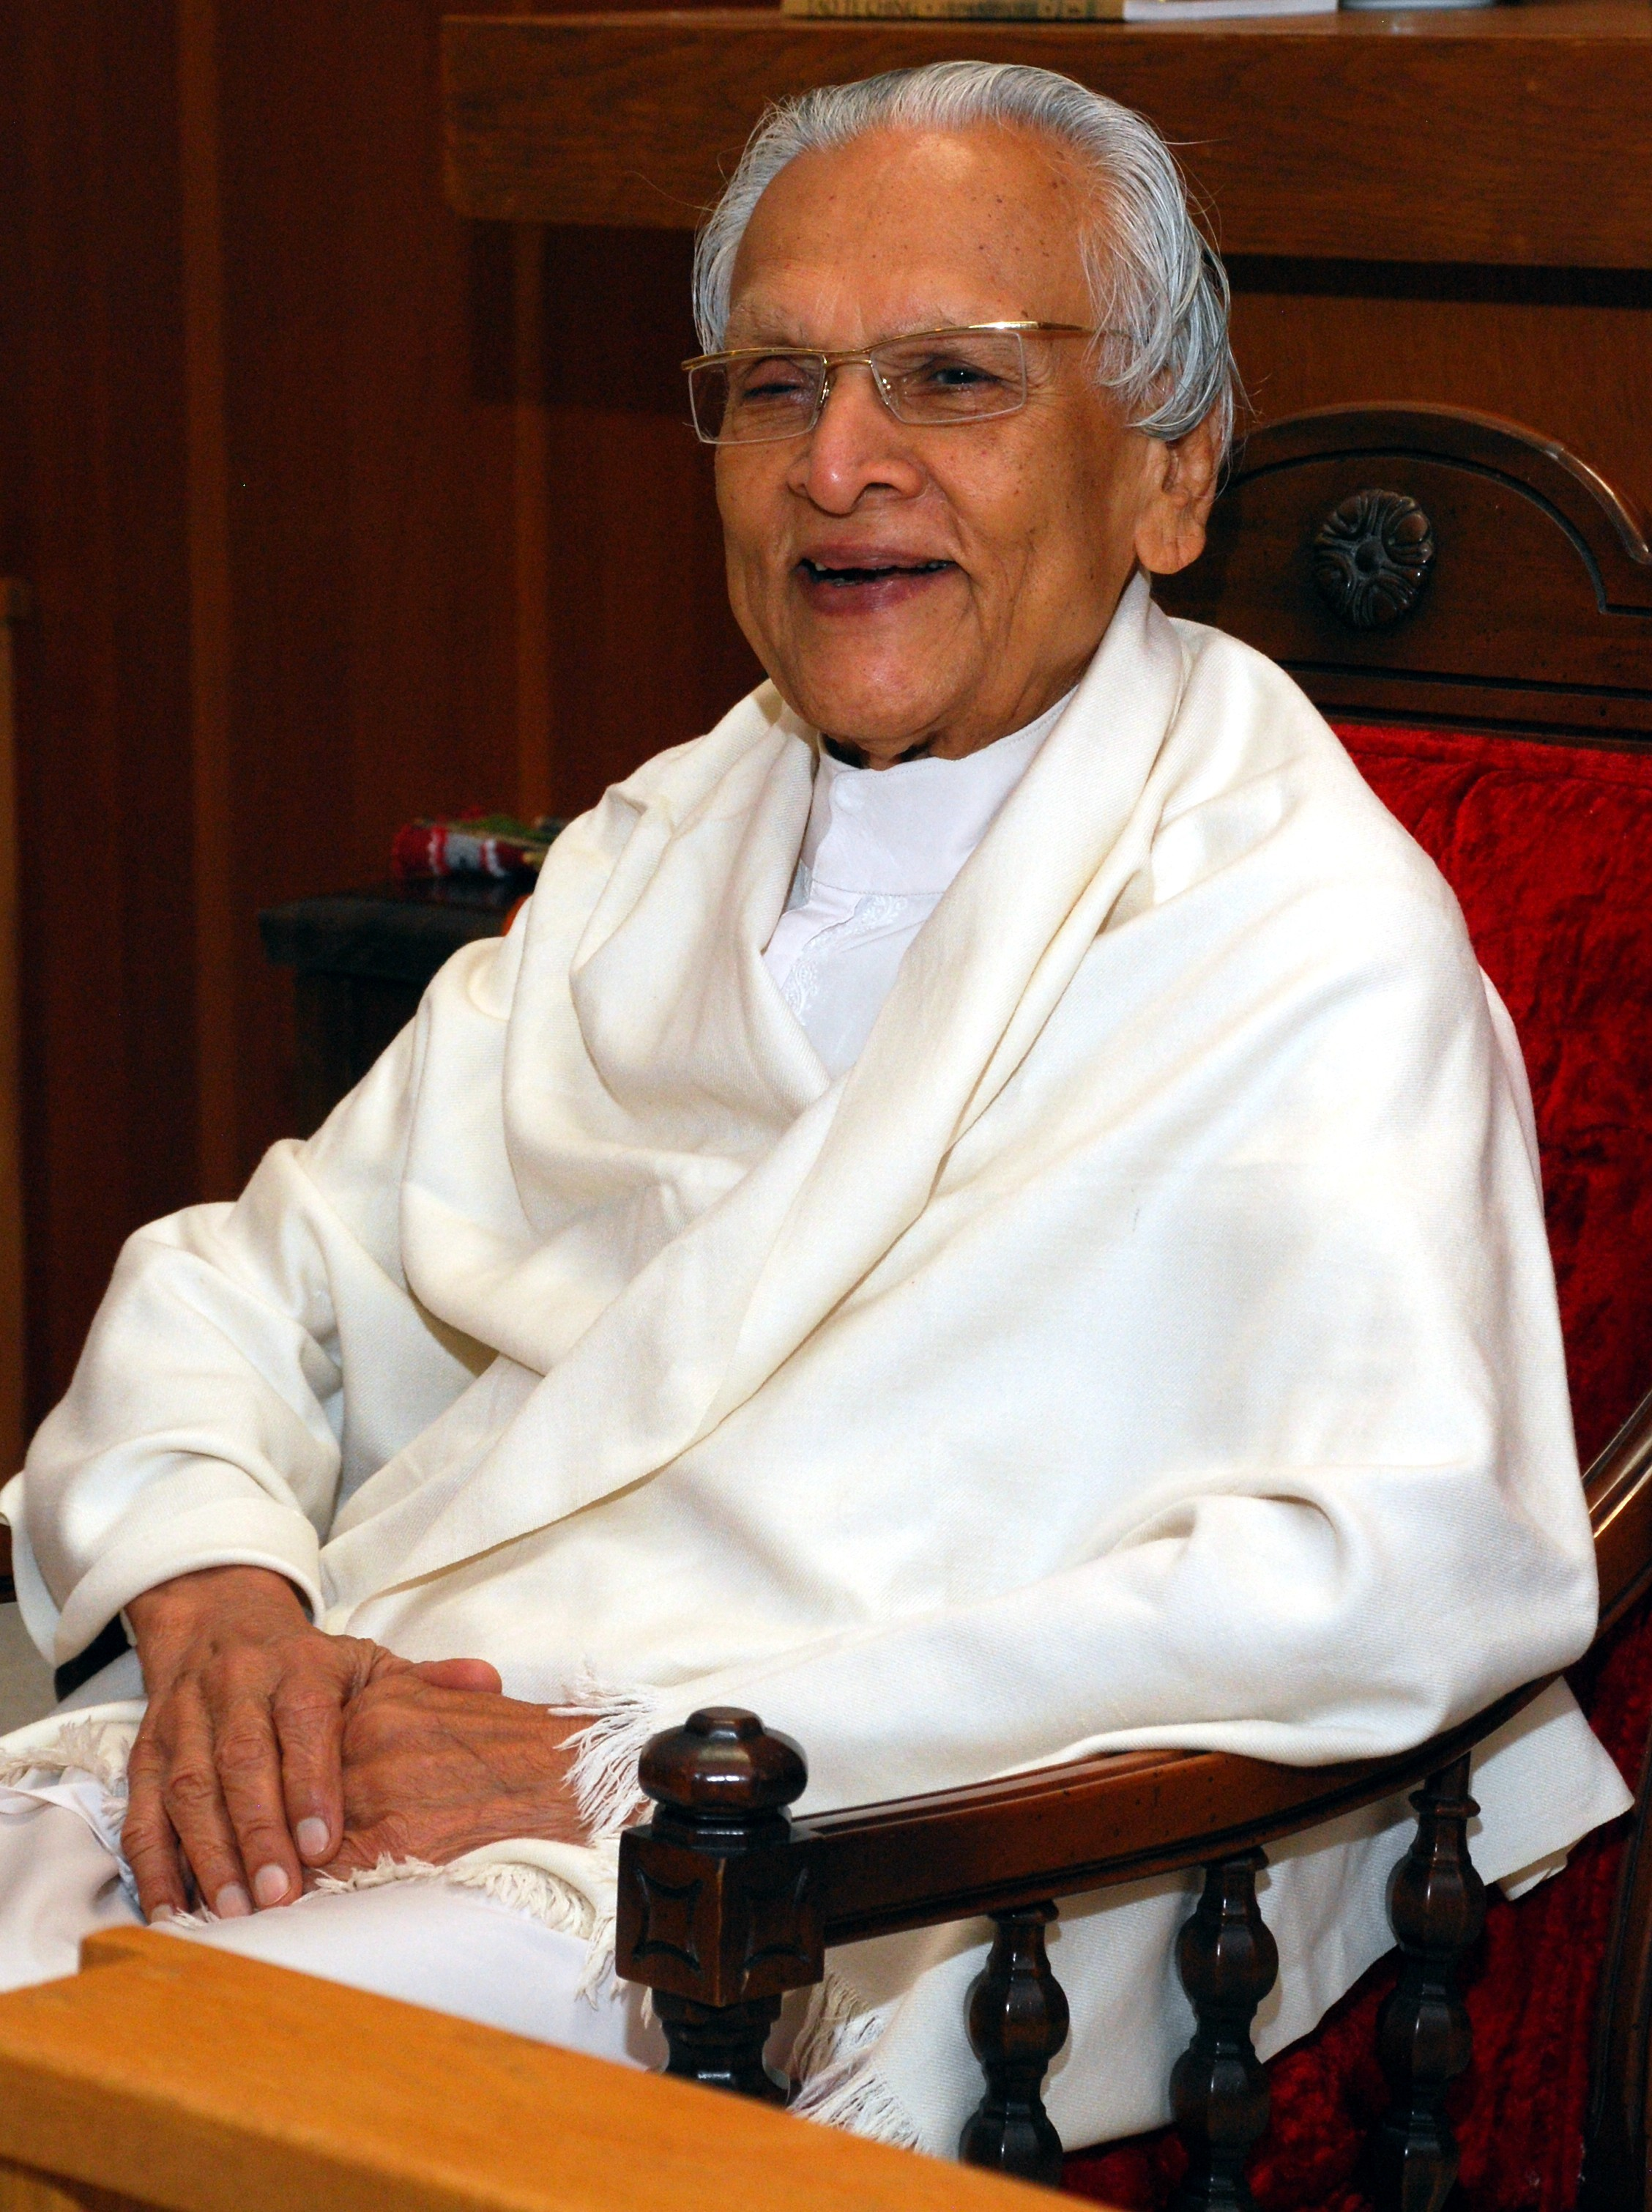 Gurudev Shree Chitrabhanuji will be speaking at the Lighthouse Center, Inc. on   Saturday, September 13th, 10:00-11:00 am   . His wife Pramodaji Chitrabhanu will speak at the same time   on Sunday   the 14th. For more info, see our website:  lighhousecenterinc.org  , or contact Prachi Patricia Thiel at  734.417.5804  ;  cprachi17@gmail.com  .